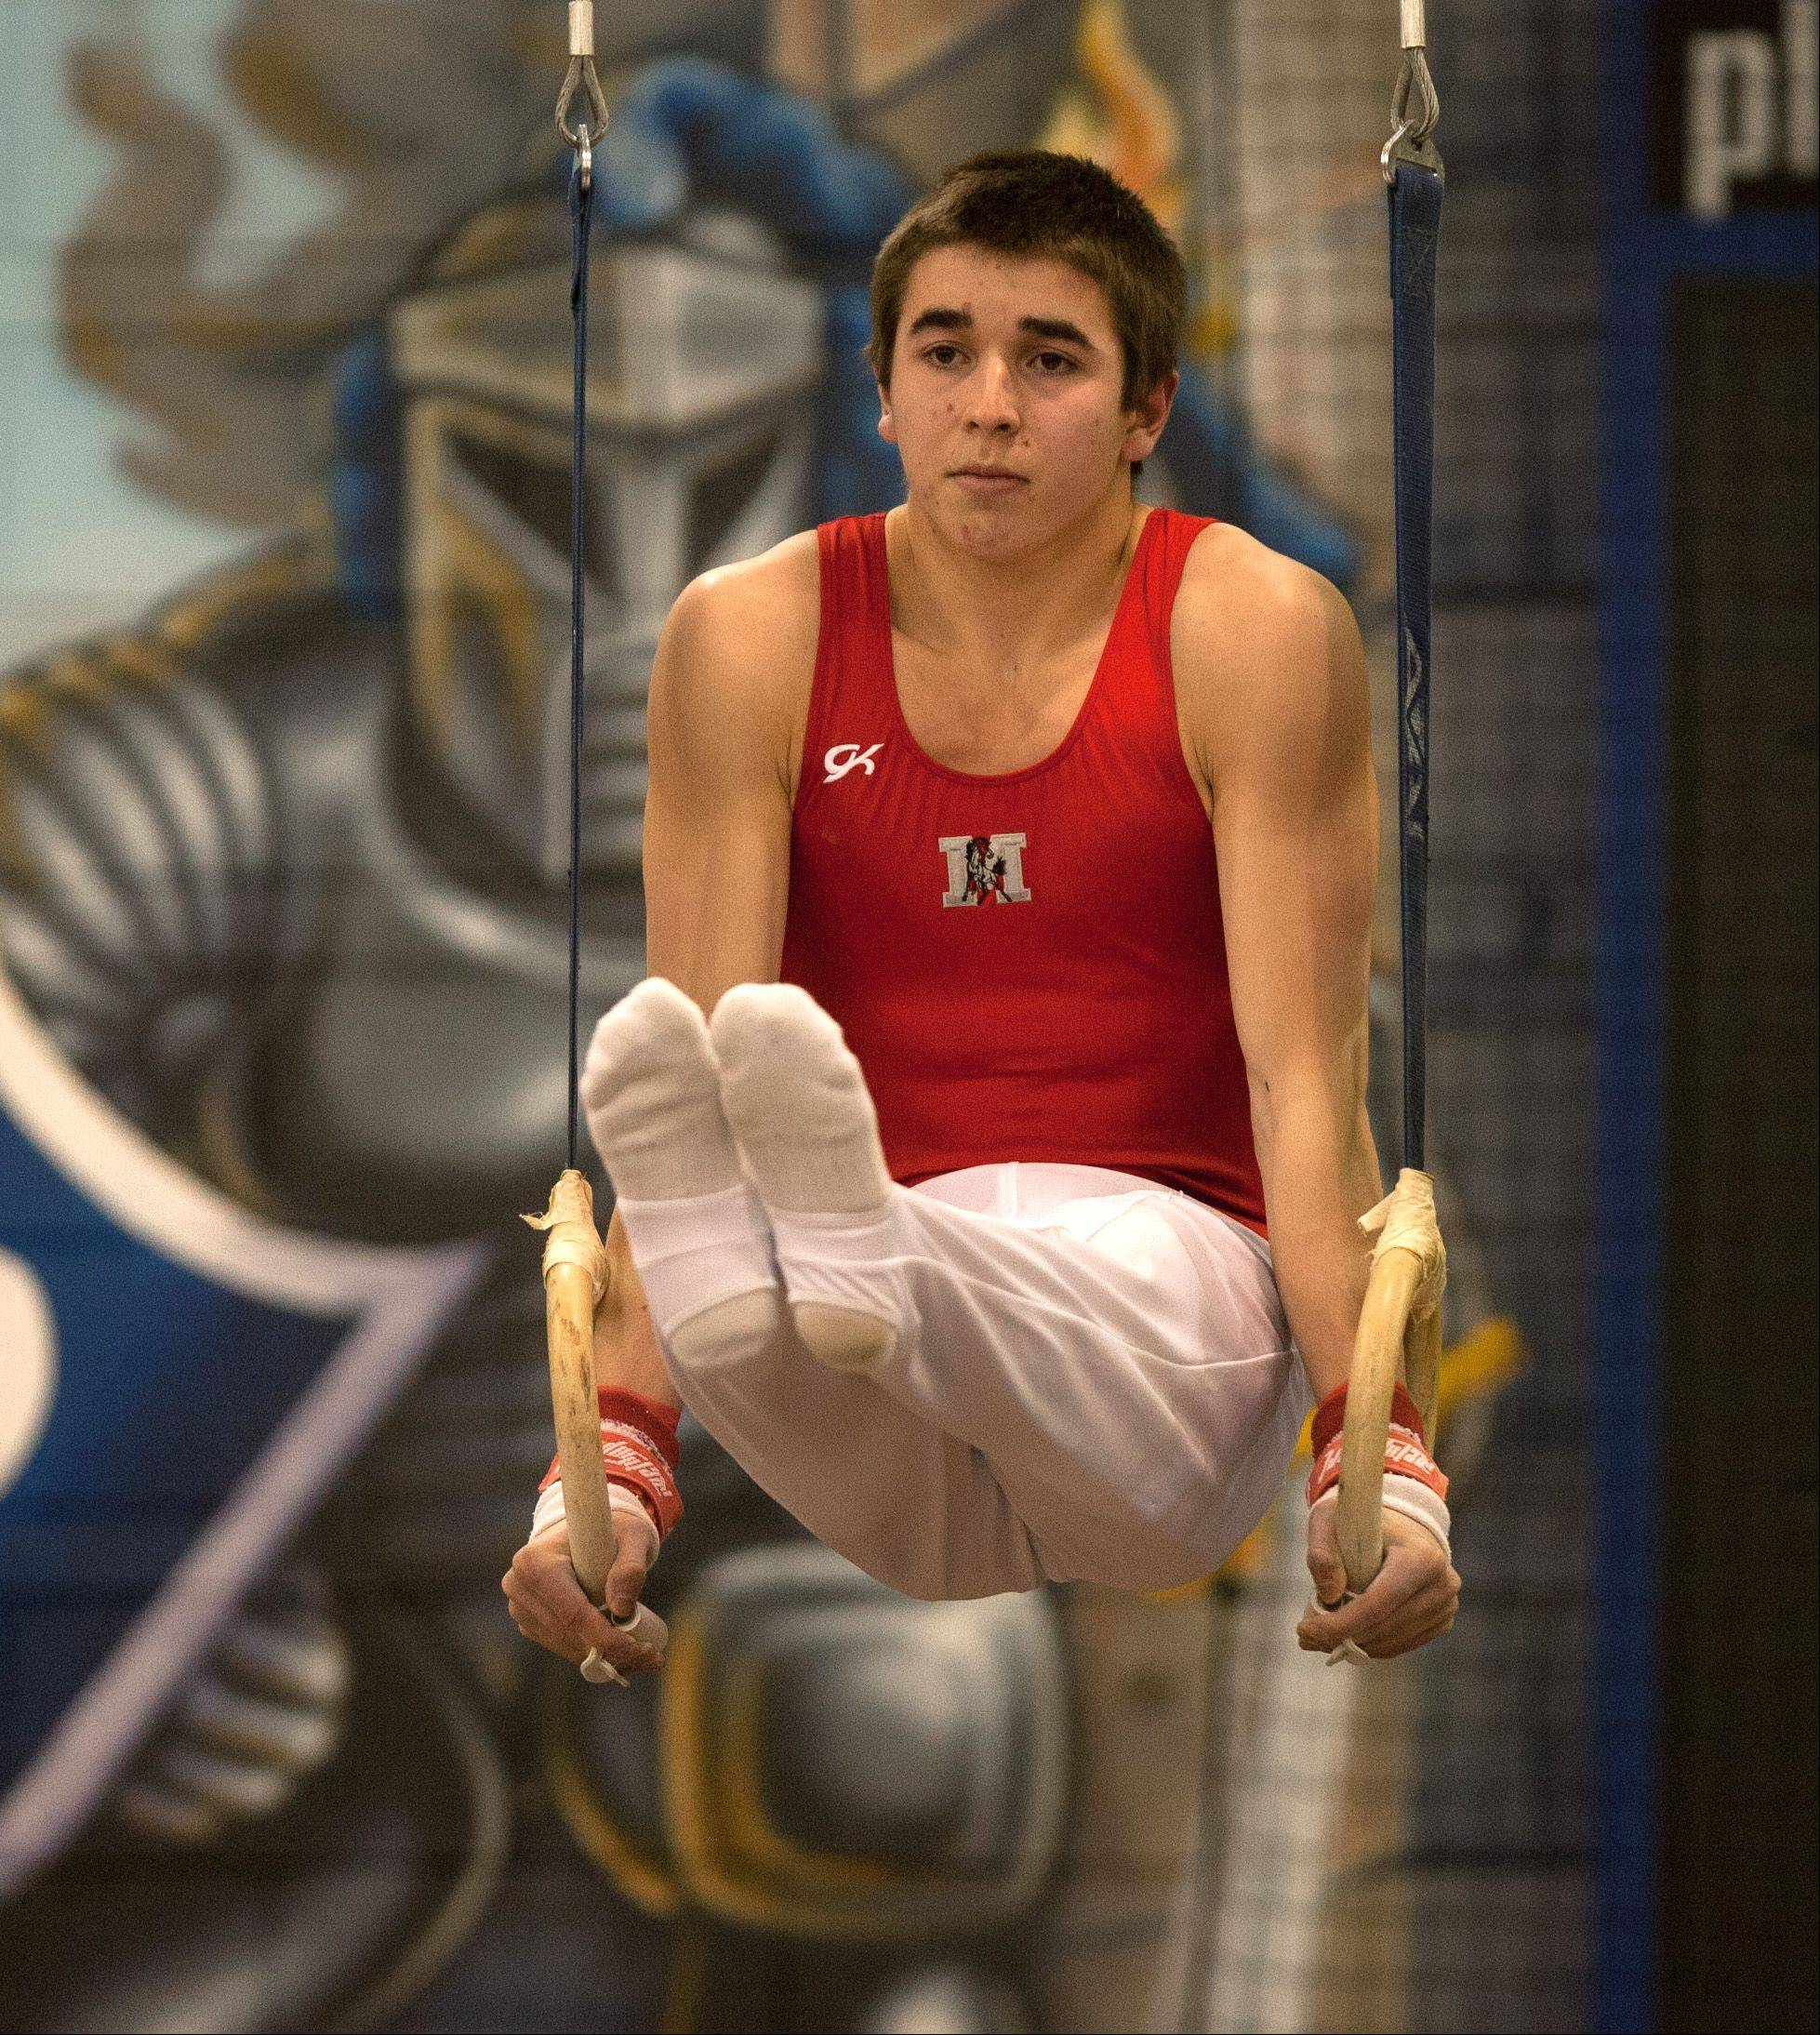 Mundelein's Colin McCarthy performs his still rings routine during the Lake Park High School Ralph Krupke Boys Gymnastics Invitational.